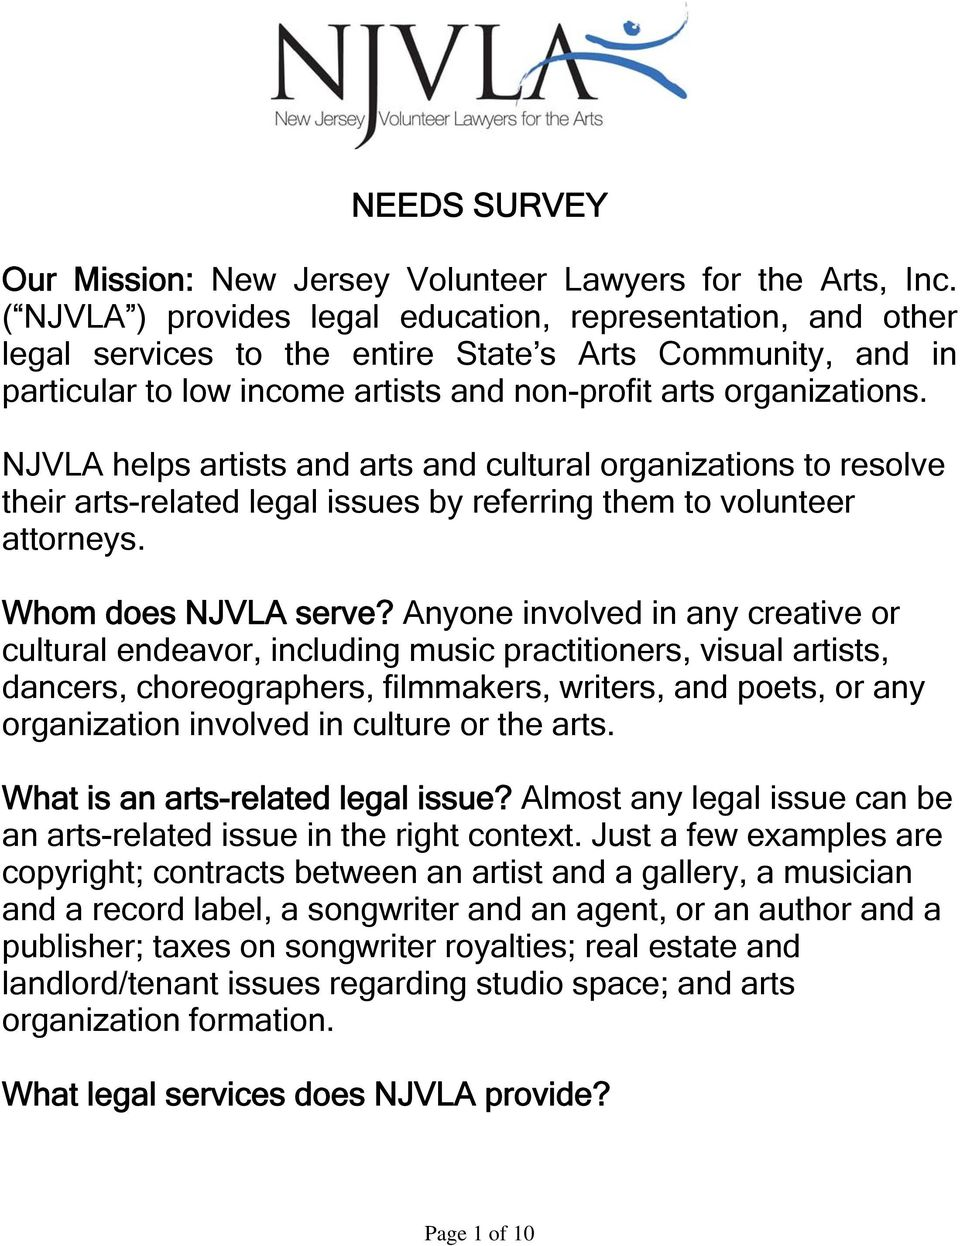 NJVLA helps artists and arts and cultural organizations to resolve their arts-related legal issues by referring them to volunteer attorneys. Whom does NJVLA serve?